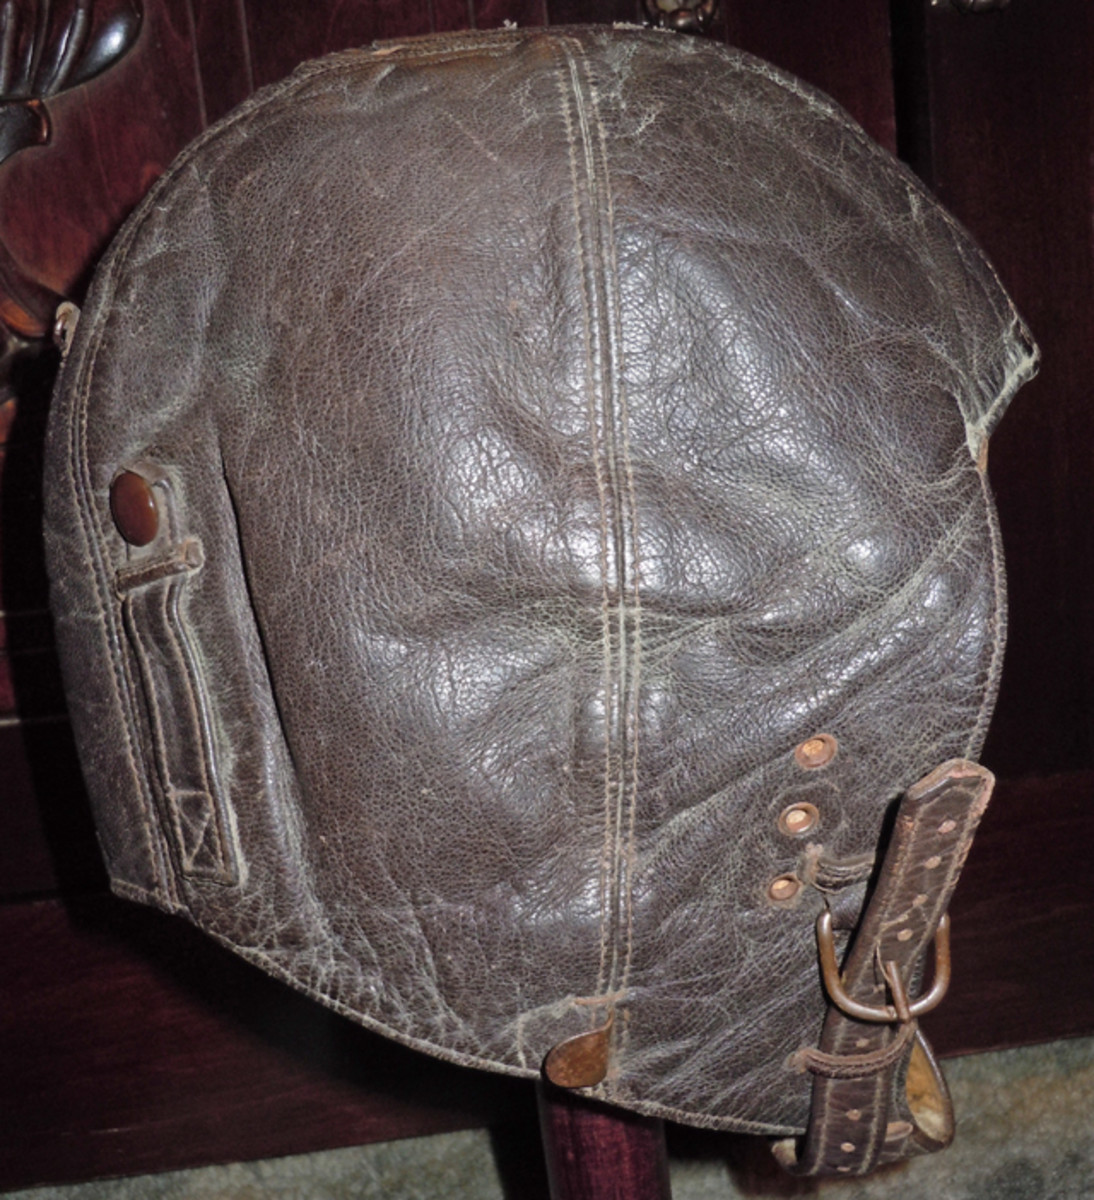 The Luftwaffe leather winter pilot helmet, Model K/33 that came with the group manufactured without installed headphone speakers.